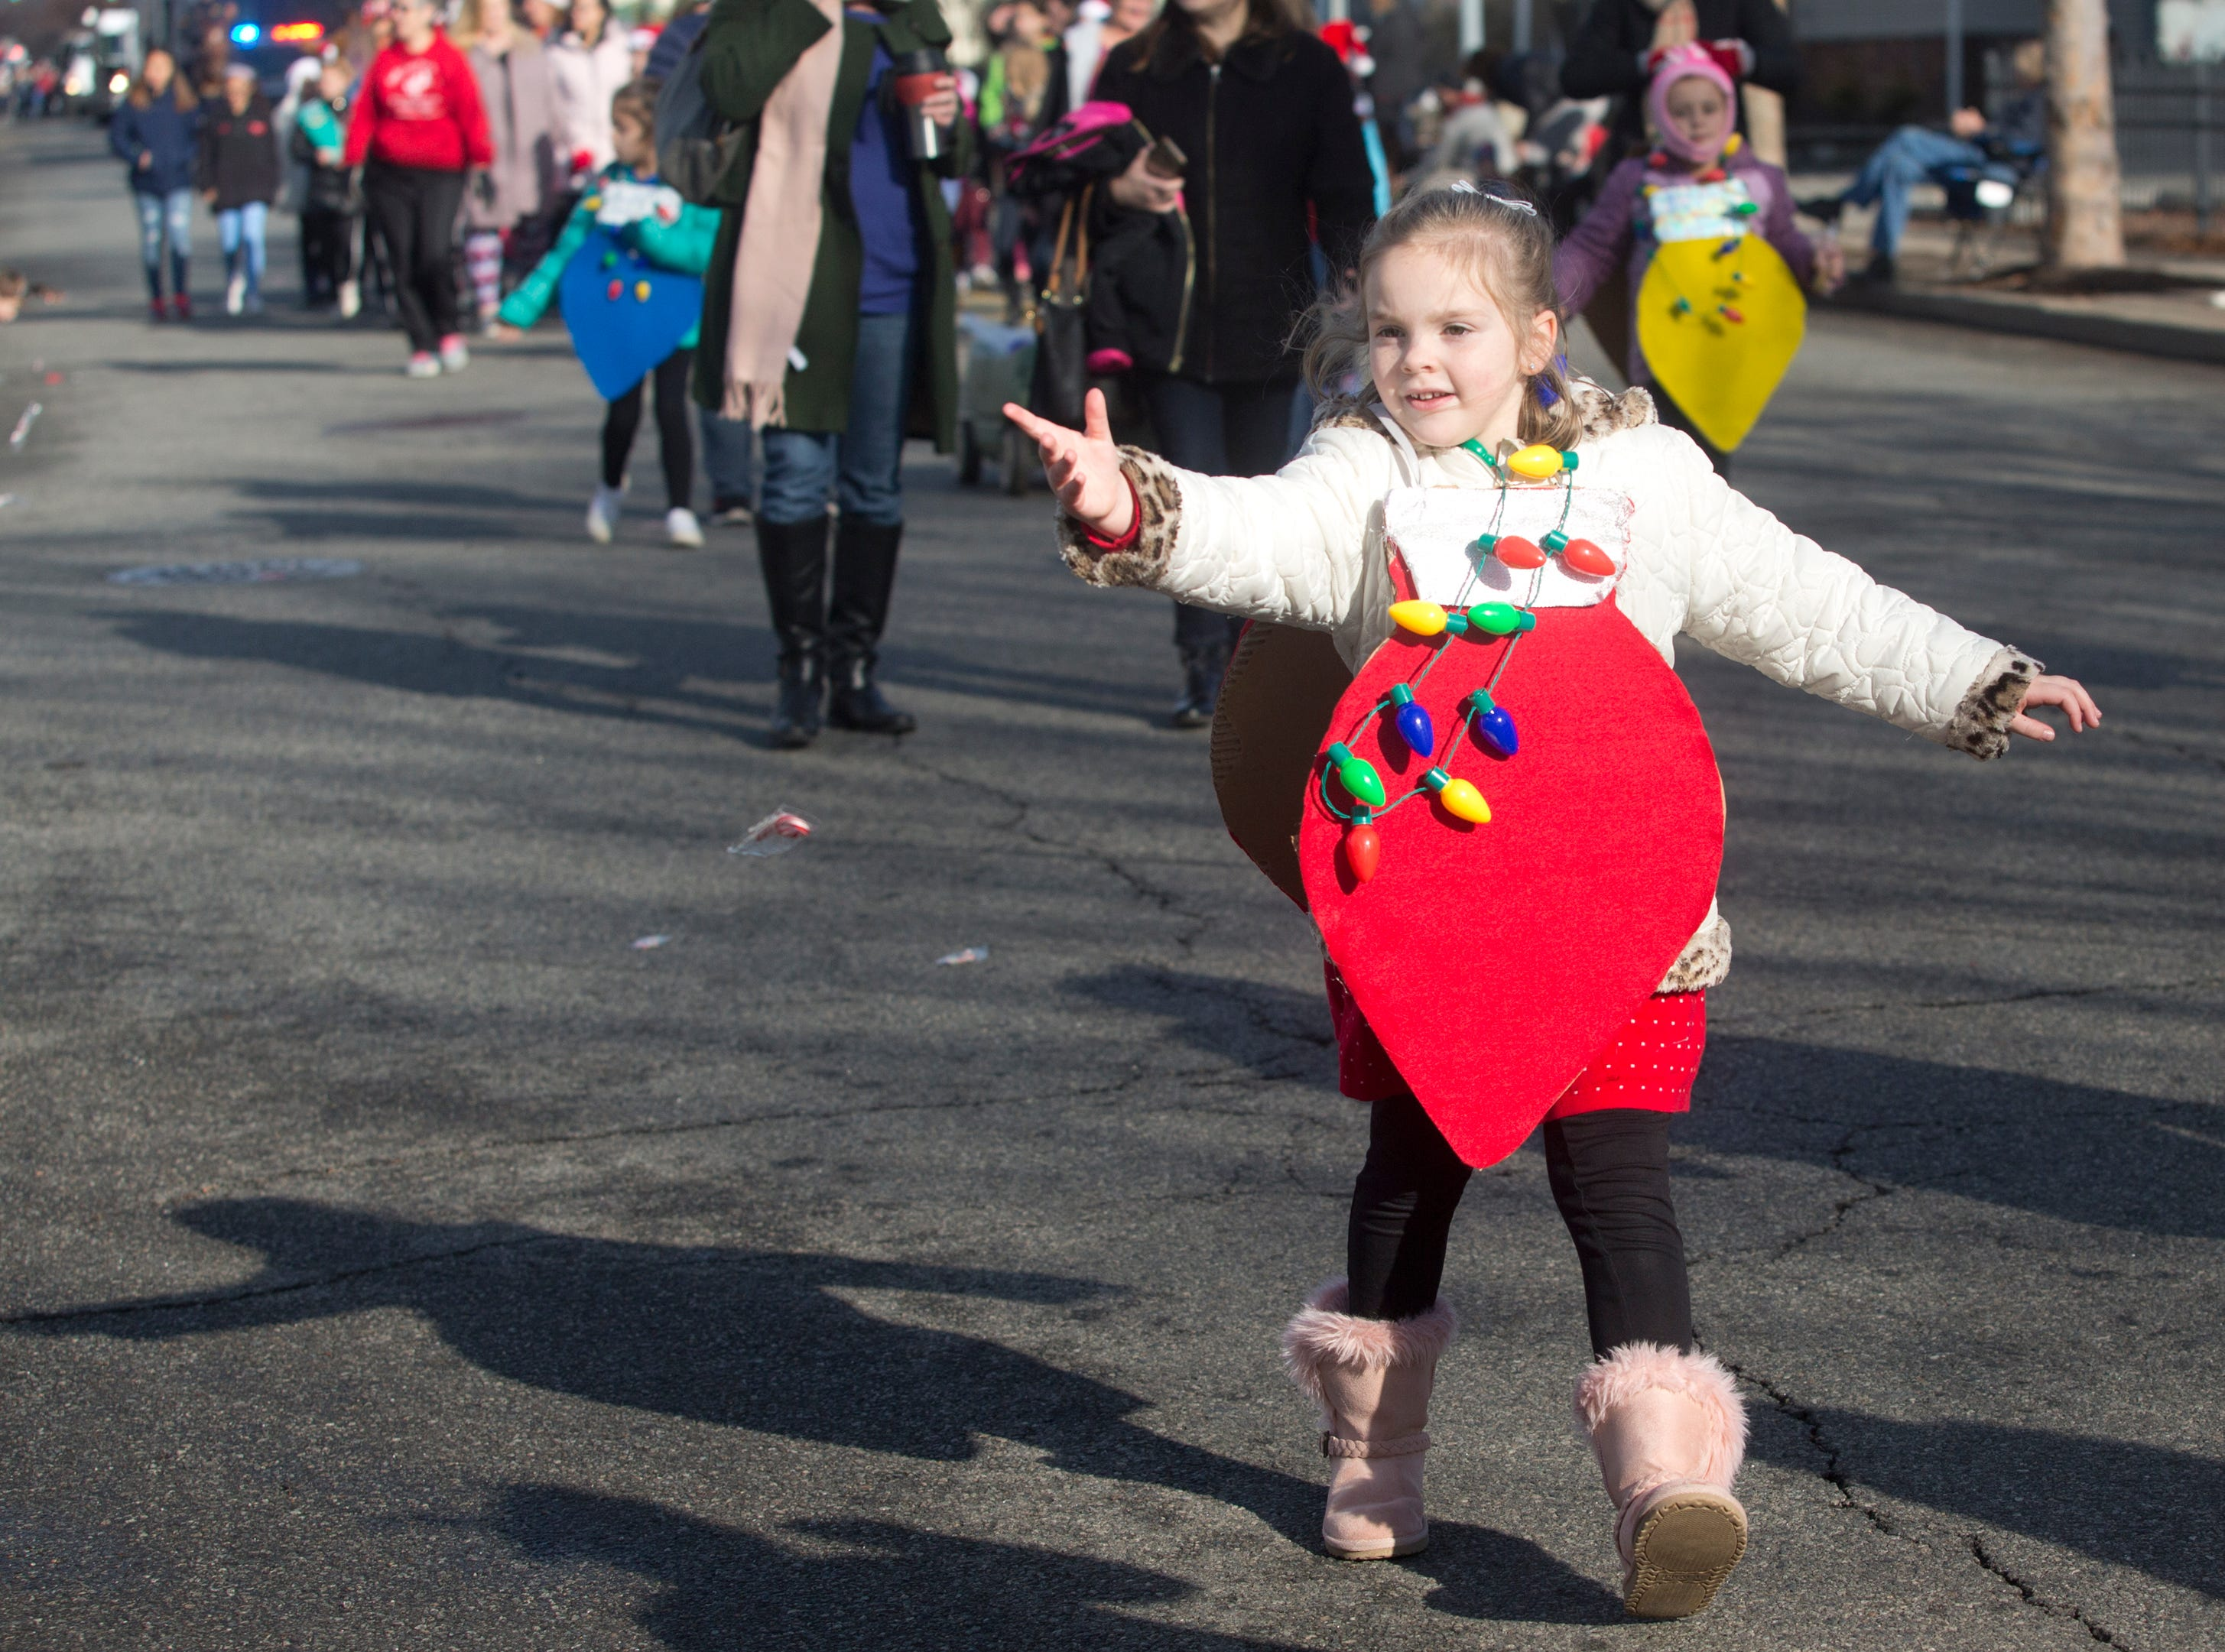 Zoe Mogen with Daisy Troop 97293 throws candy to parade goers during the 33rd Annual Santa Parade in Hawthorne on Saturday, Dec. 1, 2018.